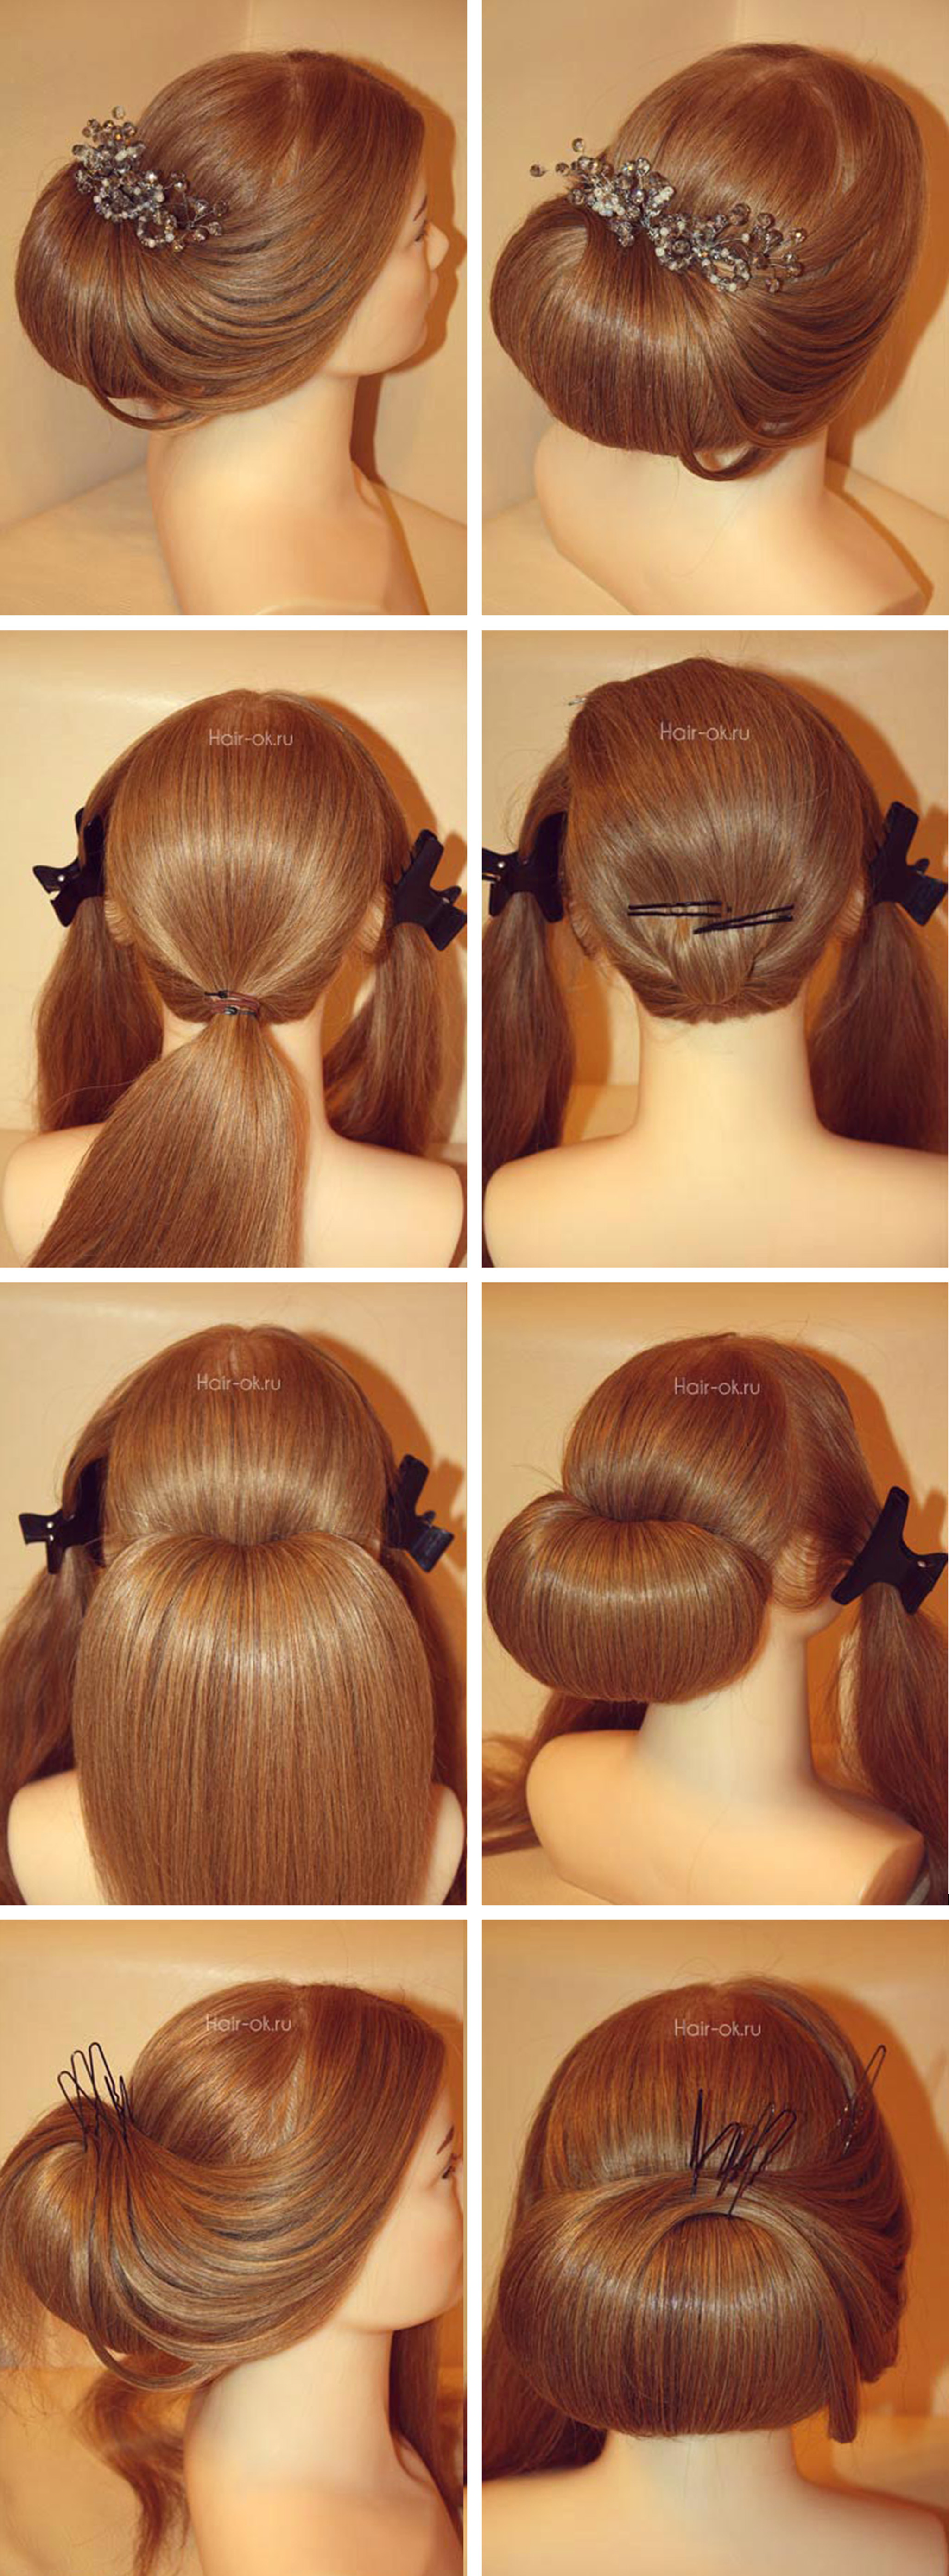 10 Easy Amp Quick Hairstyles For Parties Step By Step